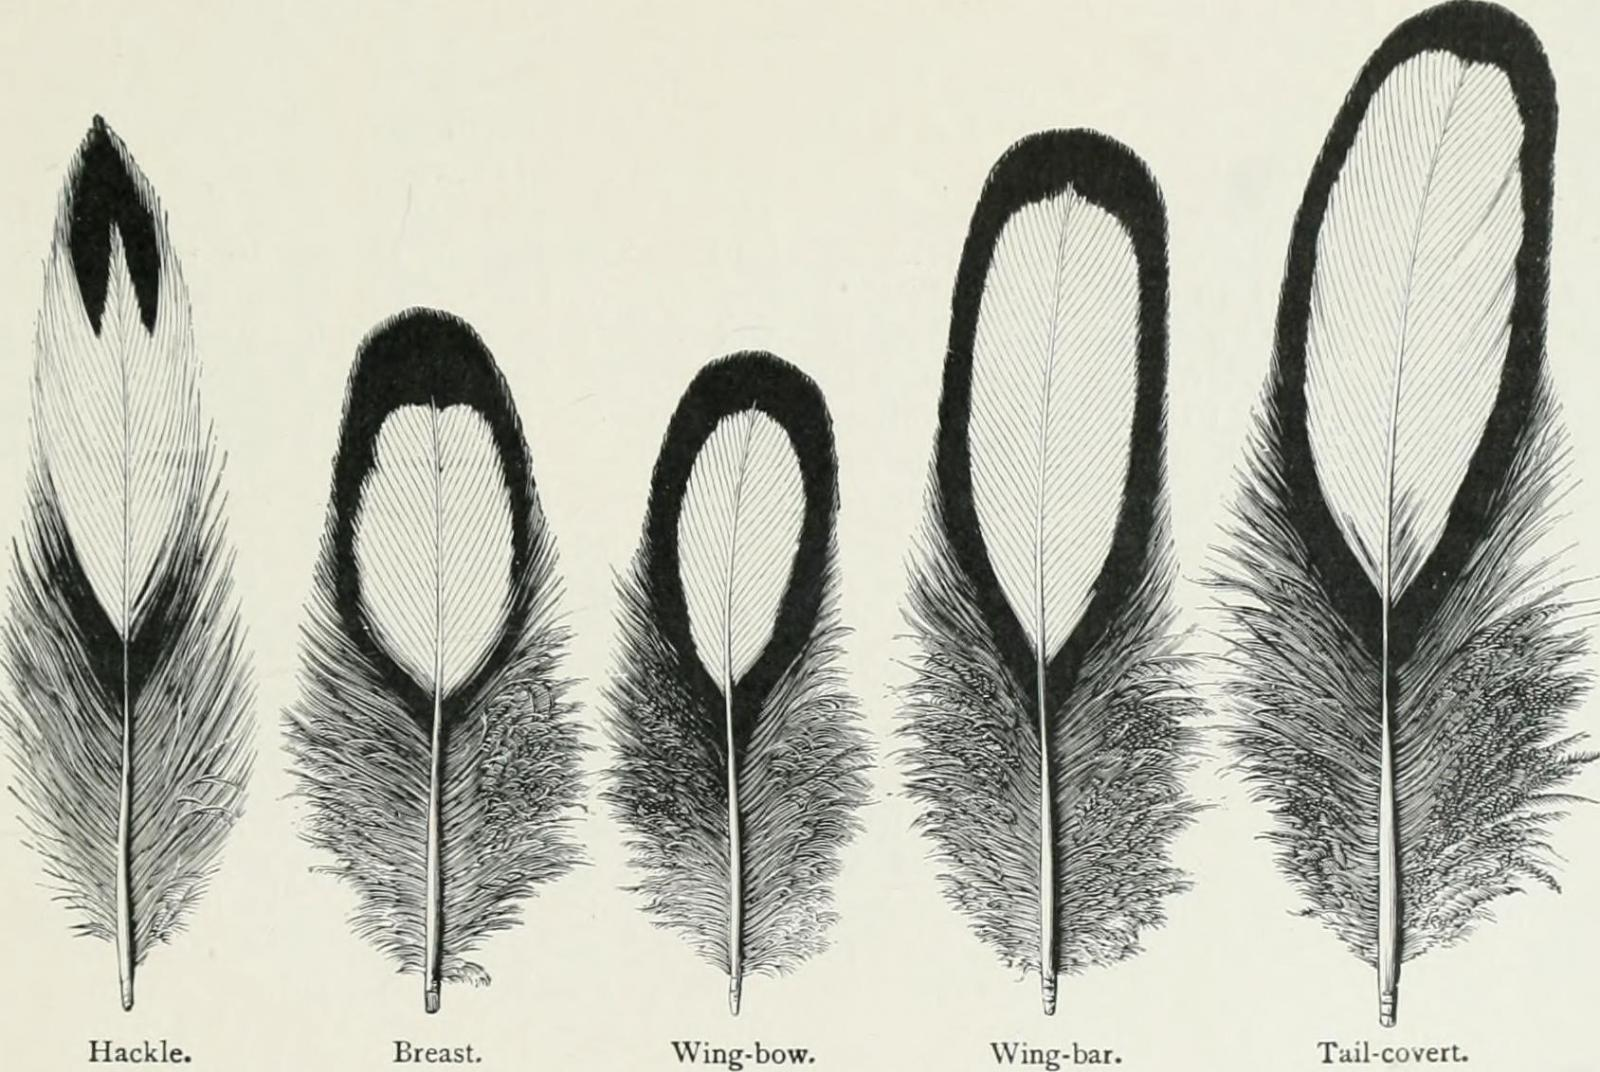 feathers: hackle, breast, wing-bow, wing-bar, tail-covert